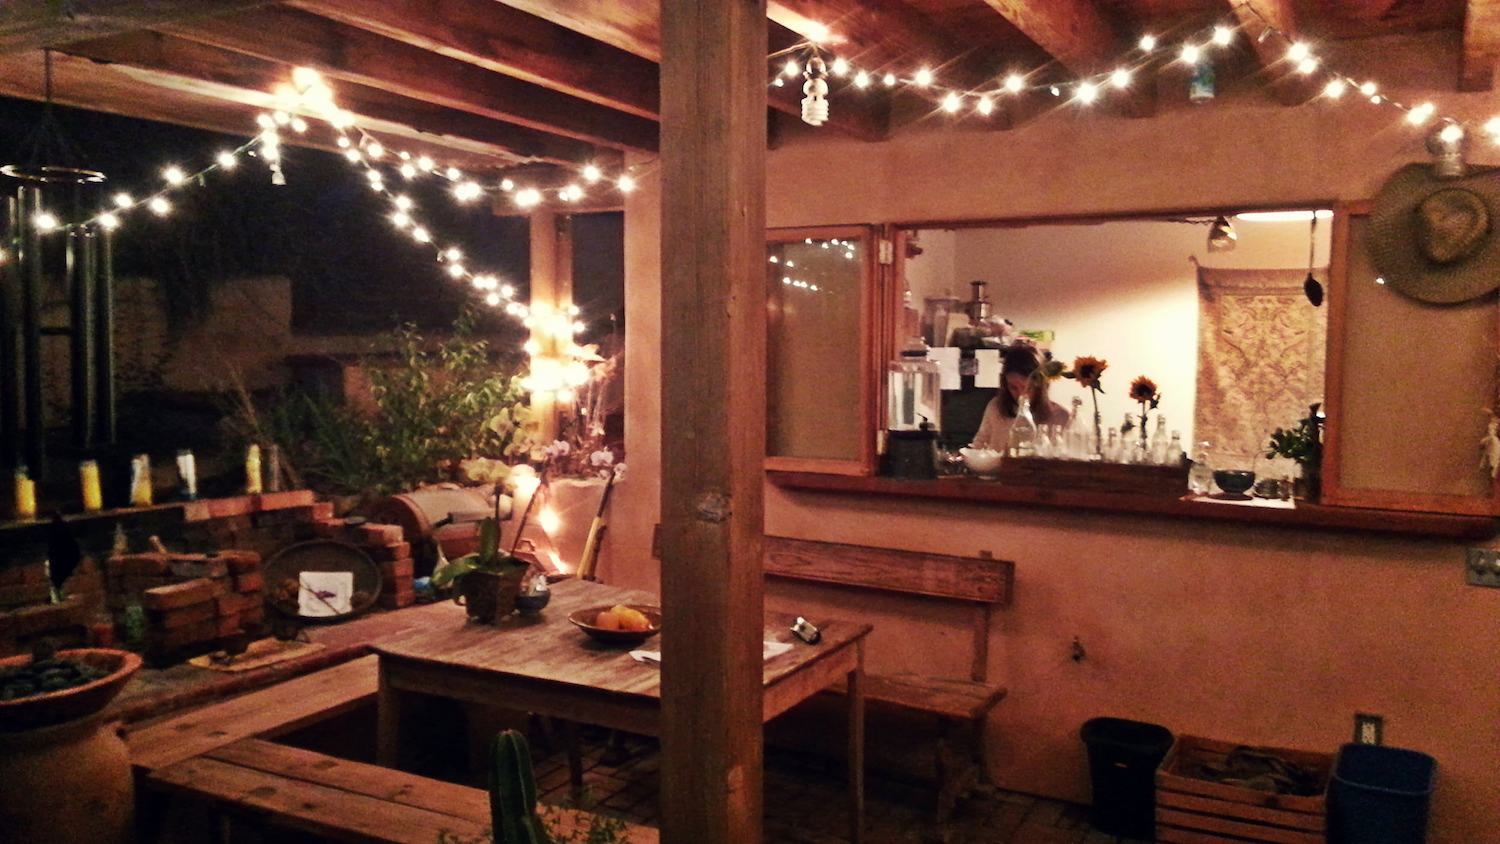 We stayed in the most beautiful  Airbnb  in Topanga, isolated at the end of a dirt road, and at the base of a gorgeous canyon.Hosted by Matthew, such an inspiring person. It was a very memorable and romantic few nights. This was our outdoor kitchen.